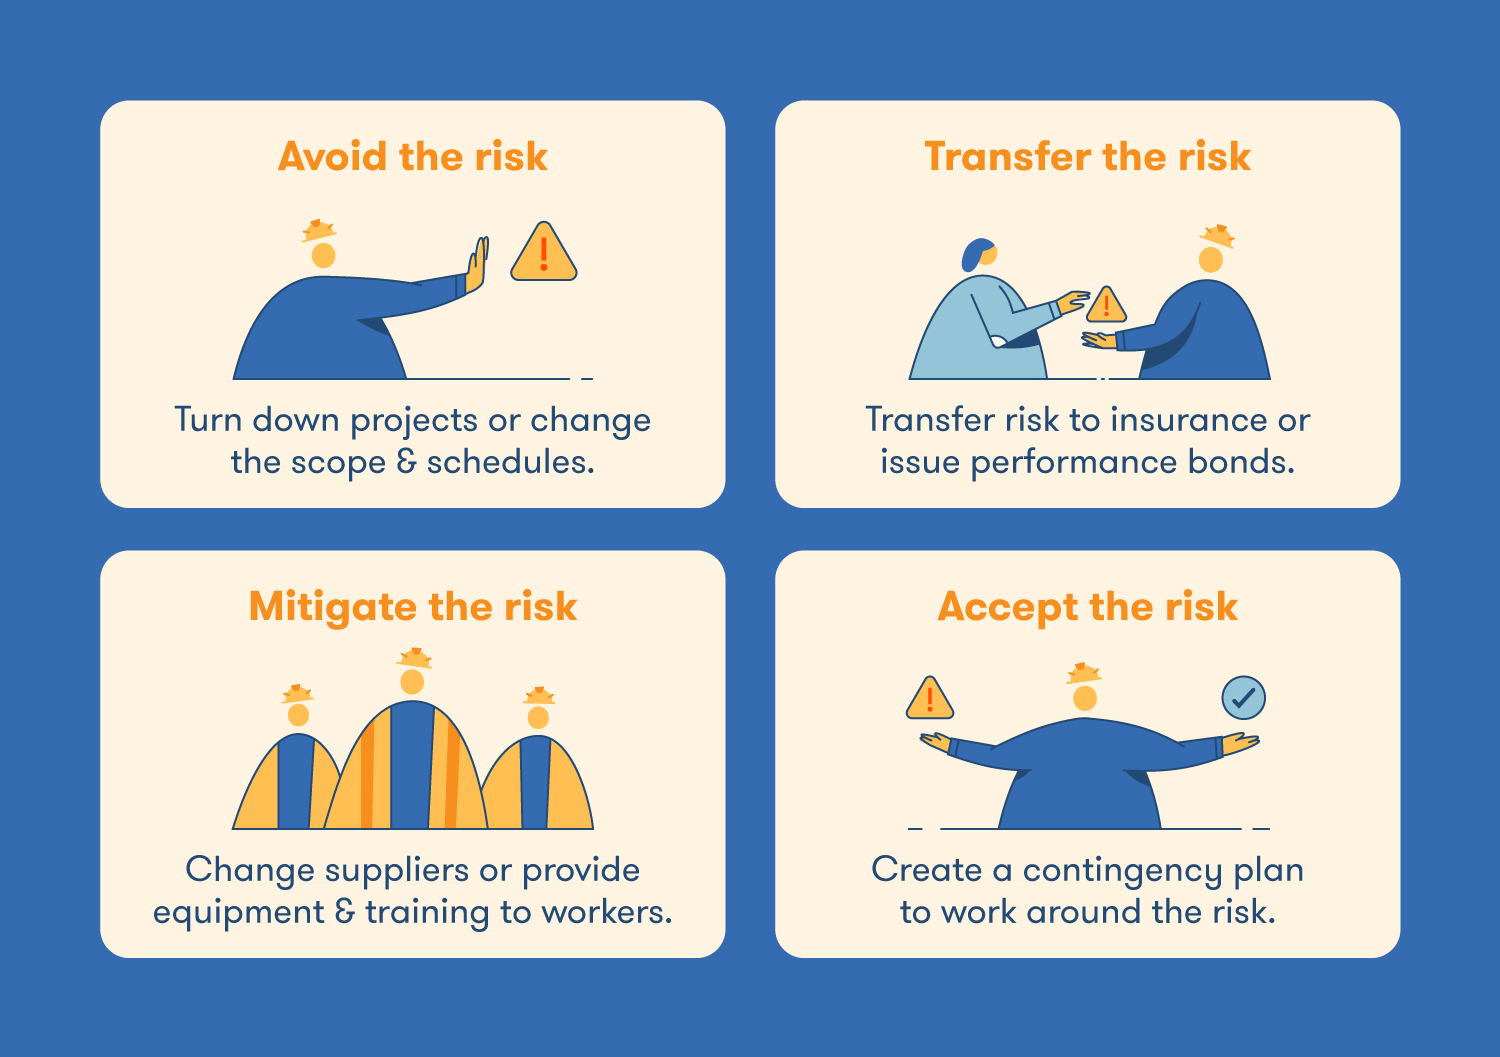 The four main risk response strategies are avoid the risk, transfer the risk, mitigate the risk, and accept the risk.